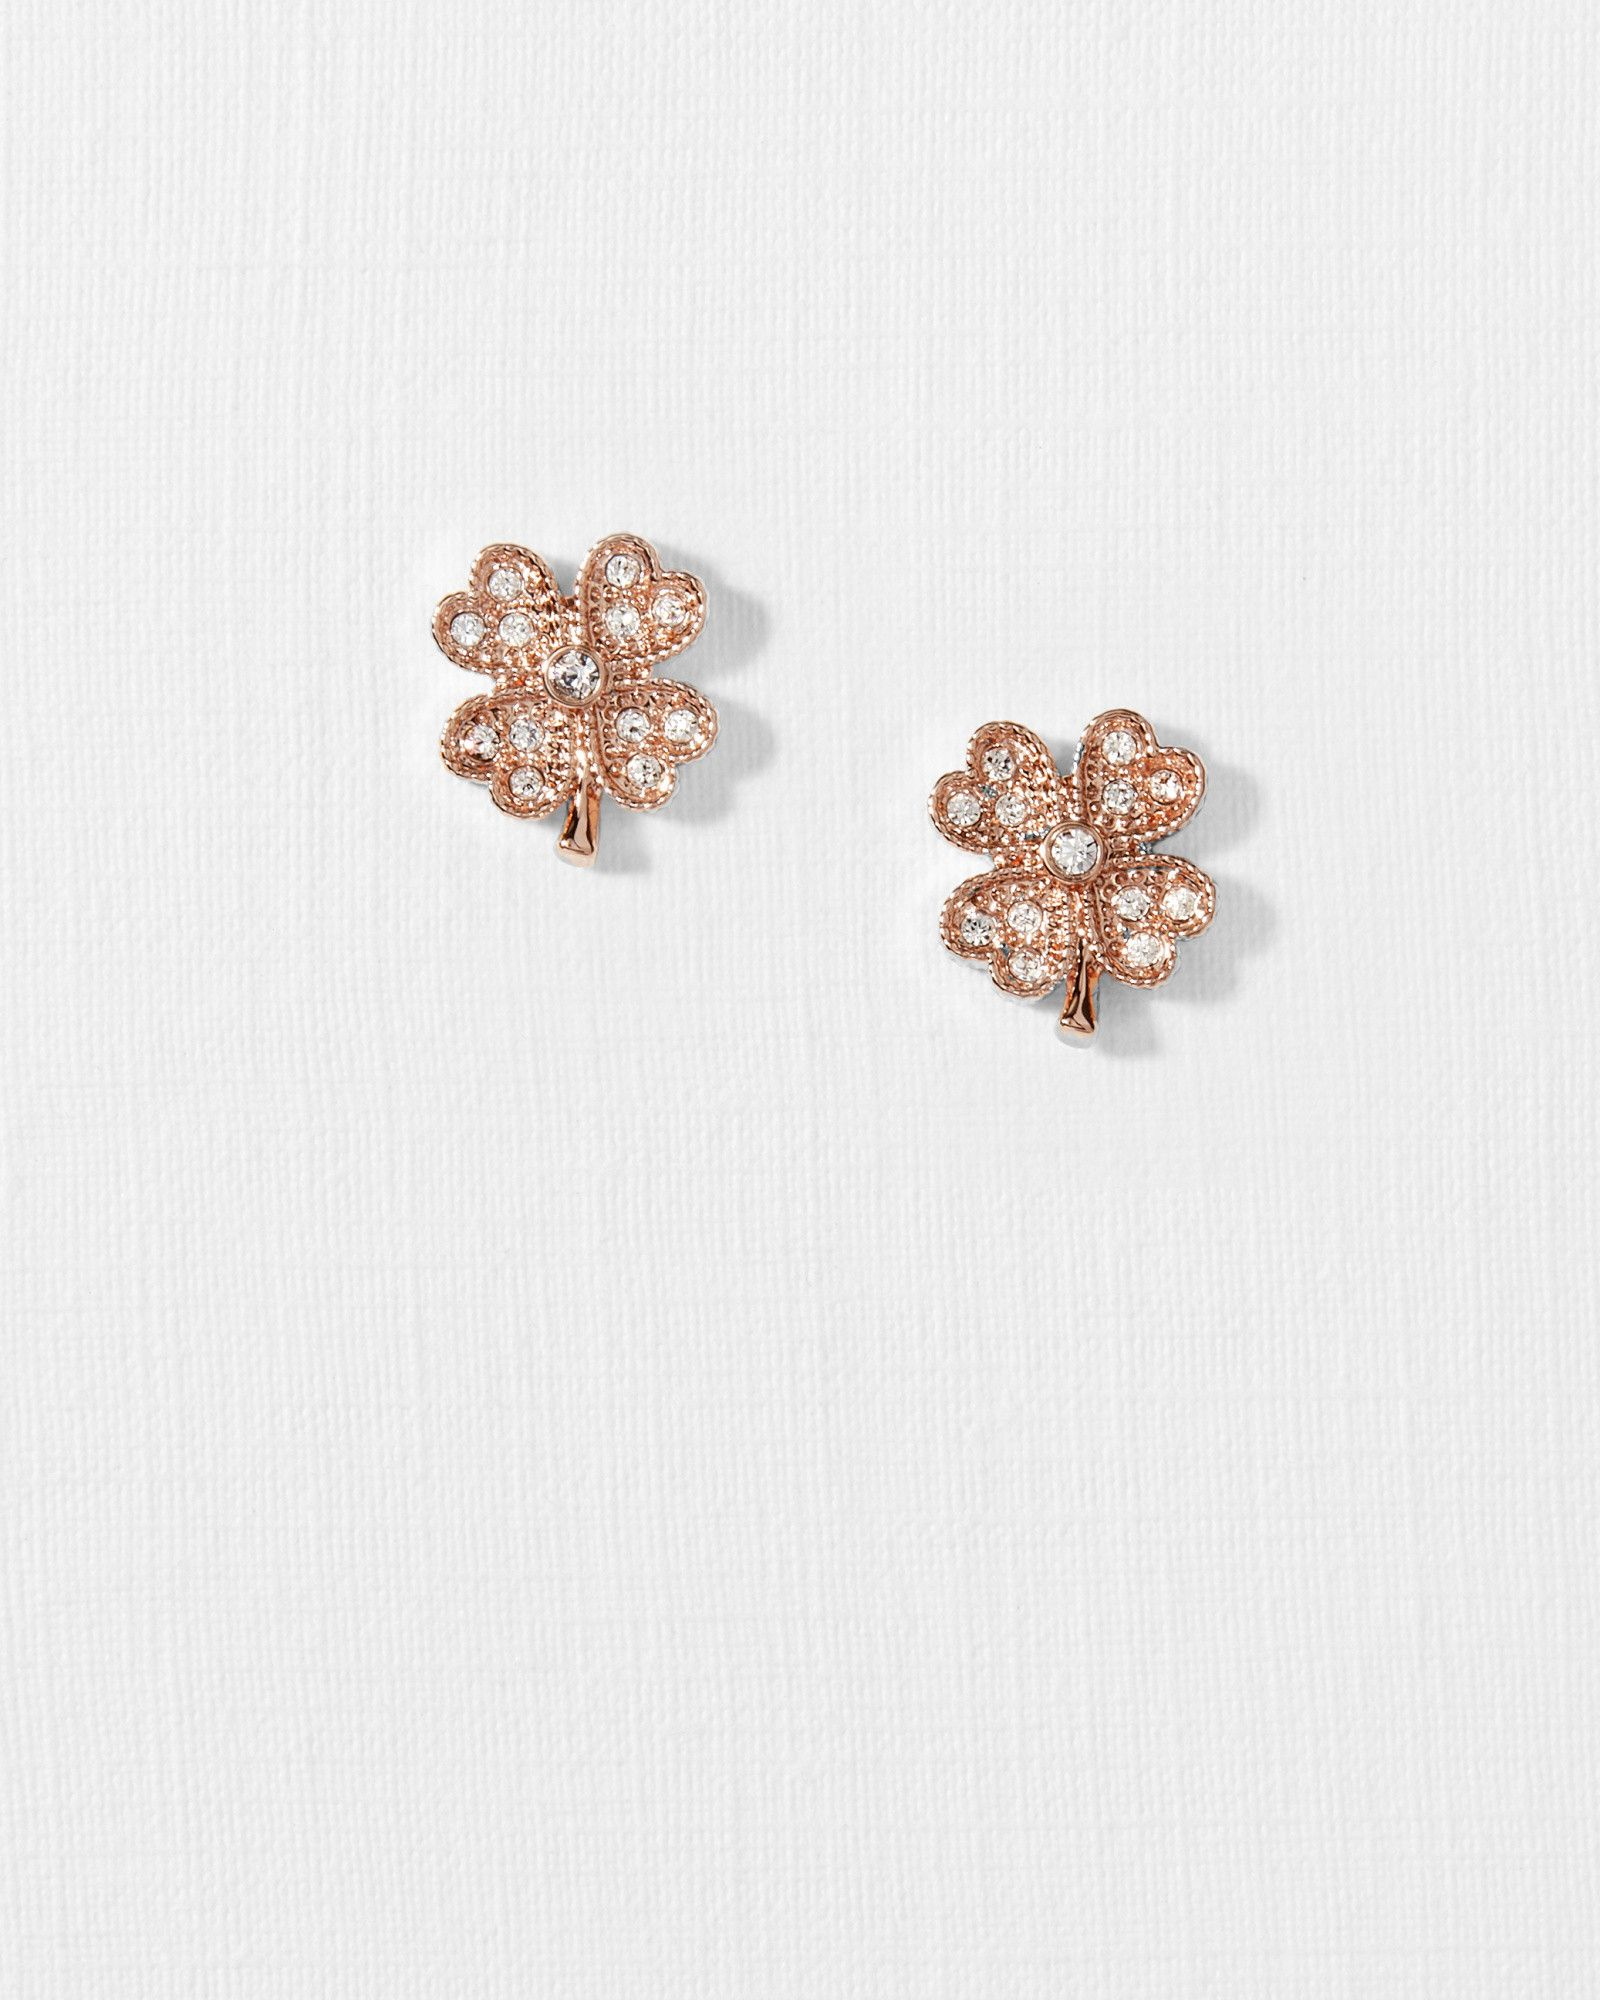 d74d435ab Crystal Clover Earrings   Products in 2019   Rose gold earrings ...